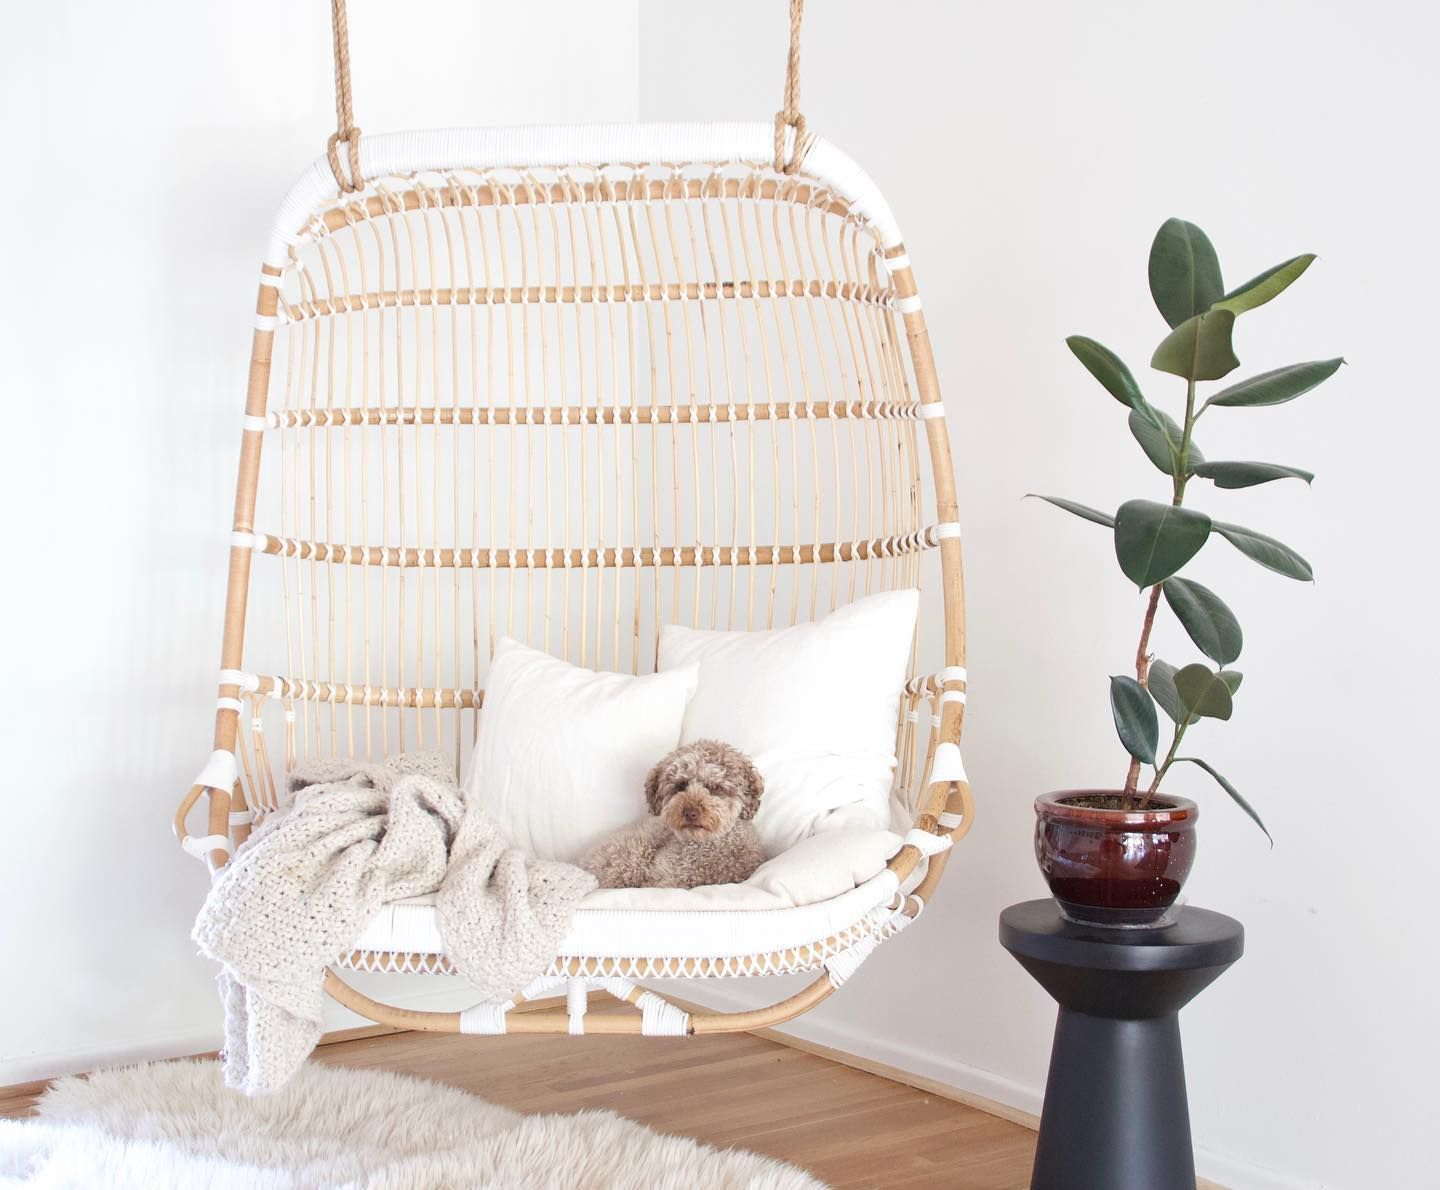 Double Hanging Rattan Chair Chairs Serena and Lily in